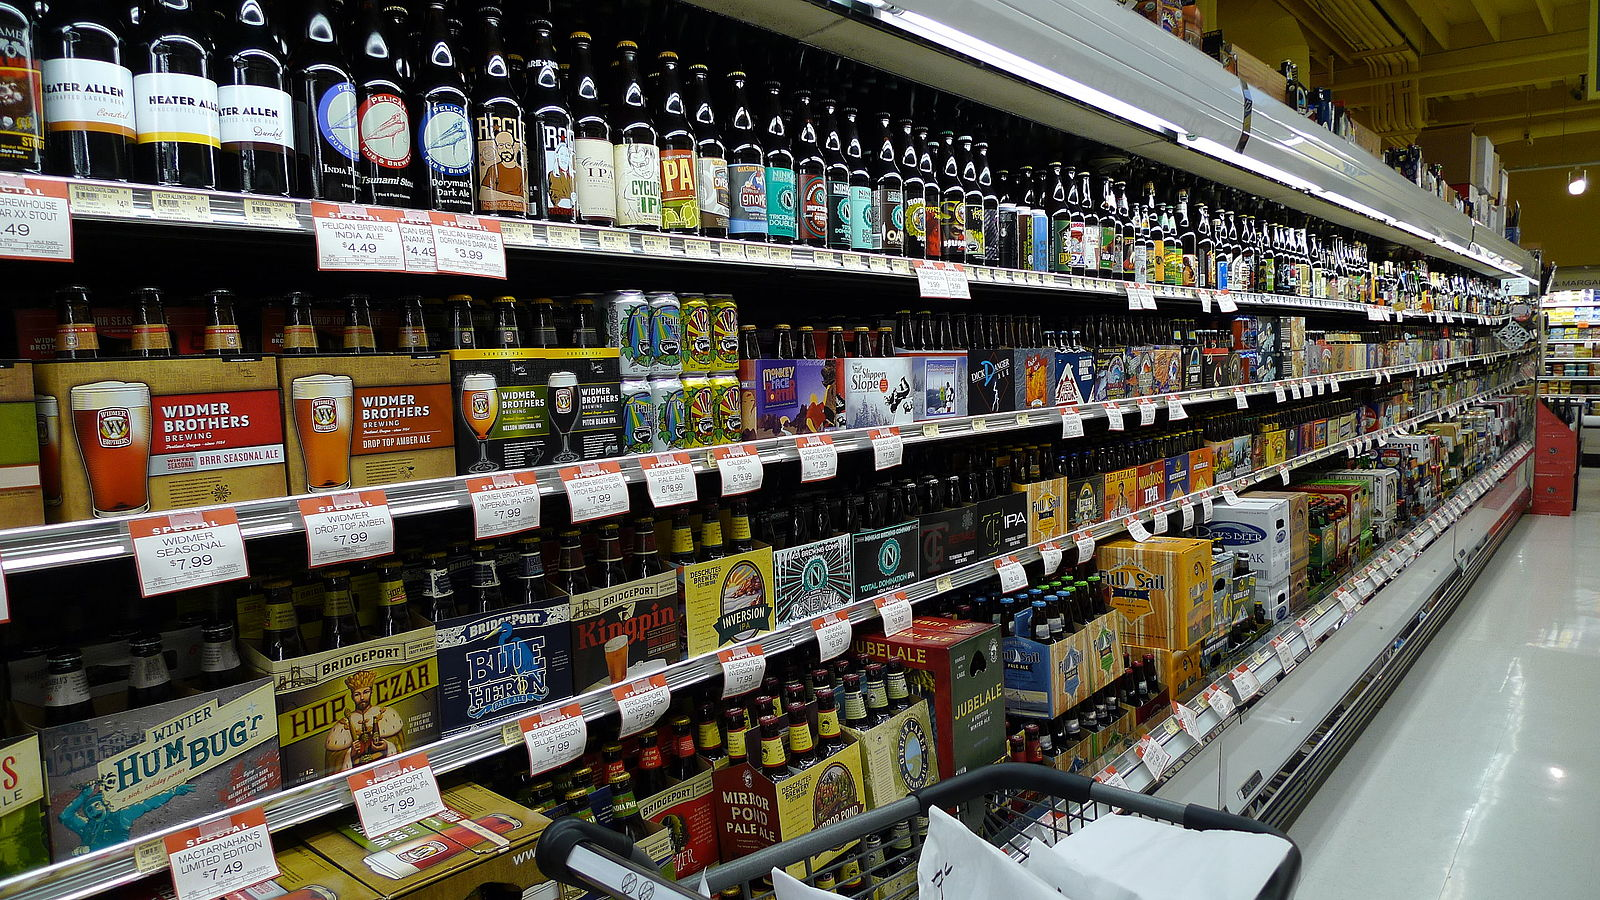 A liquor section at the New Seasons Market Inc. (a privately held company)